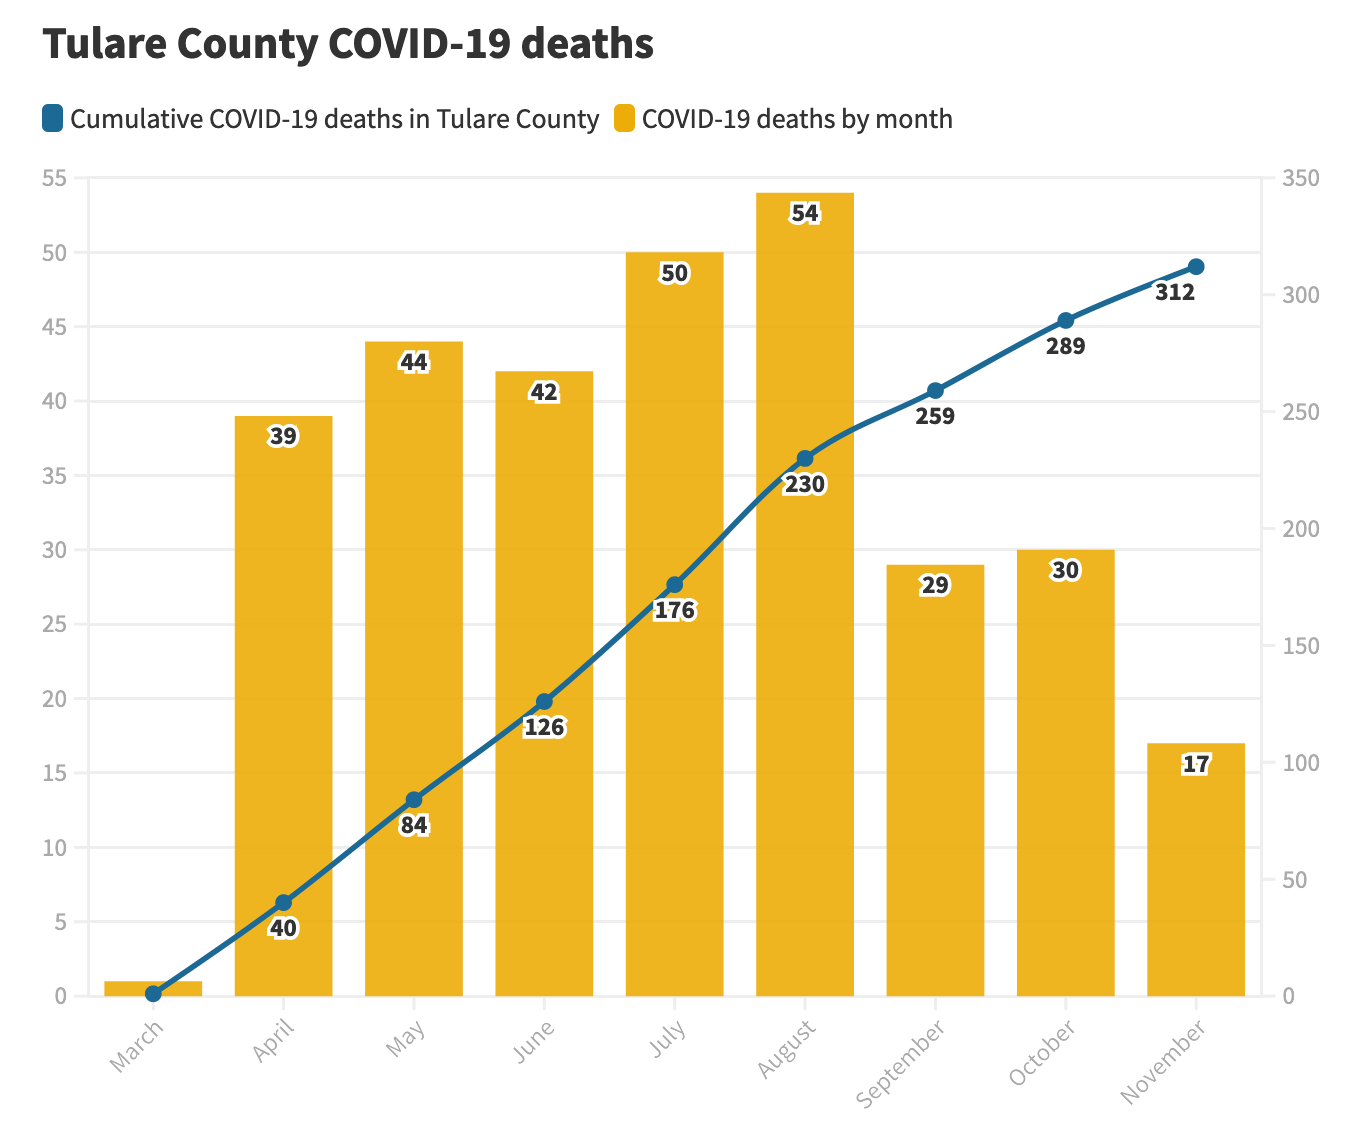 chart showing death rates in Tulare County due to COVID which lead to suspension of jury trials